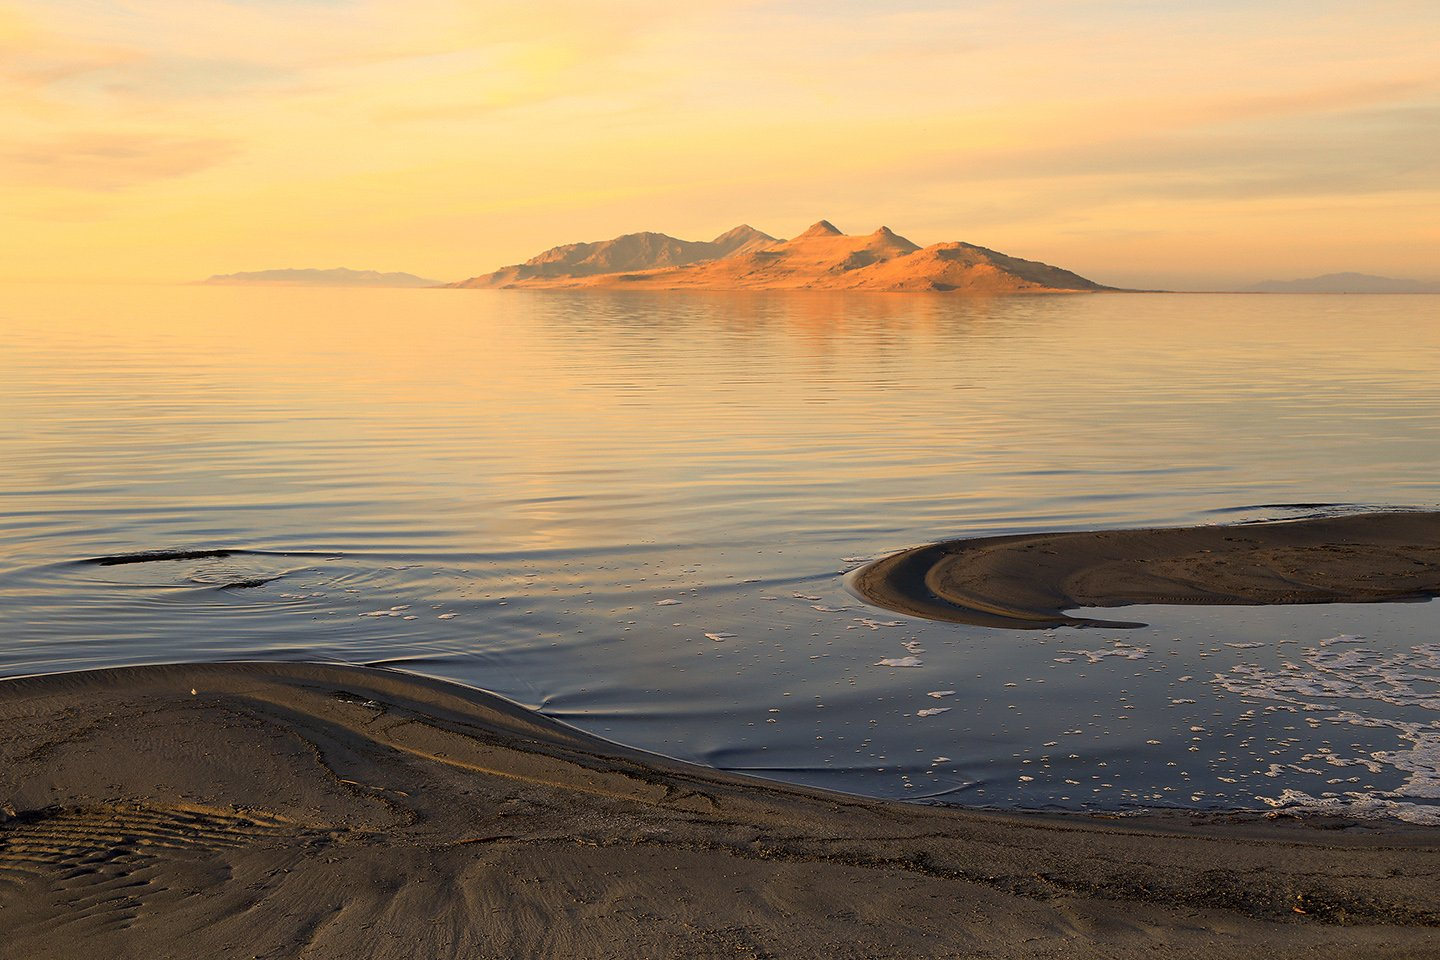 Great Salt Lake at sunset, with Antelope Island visible in the distance